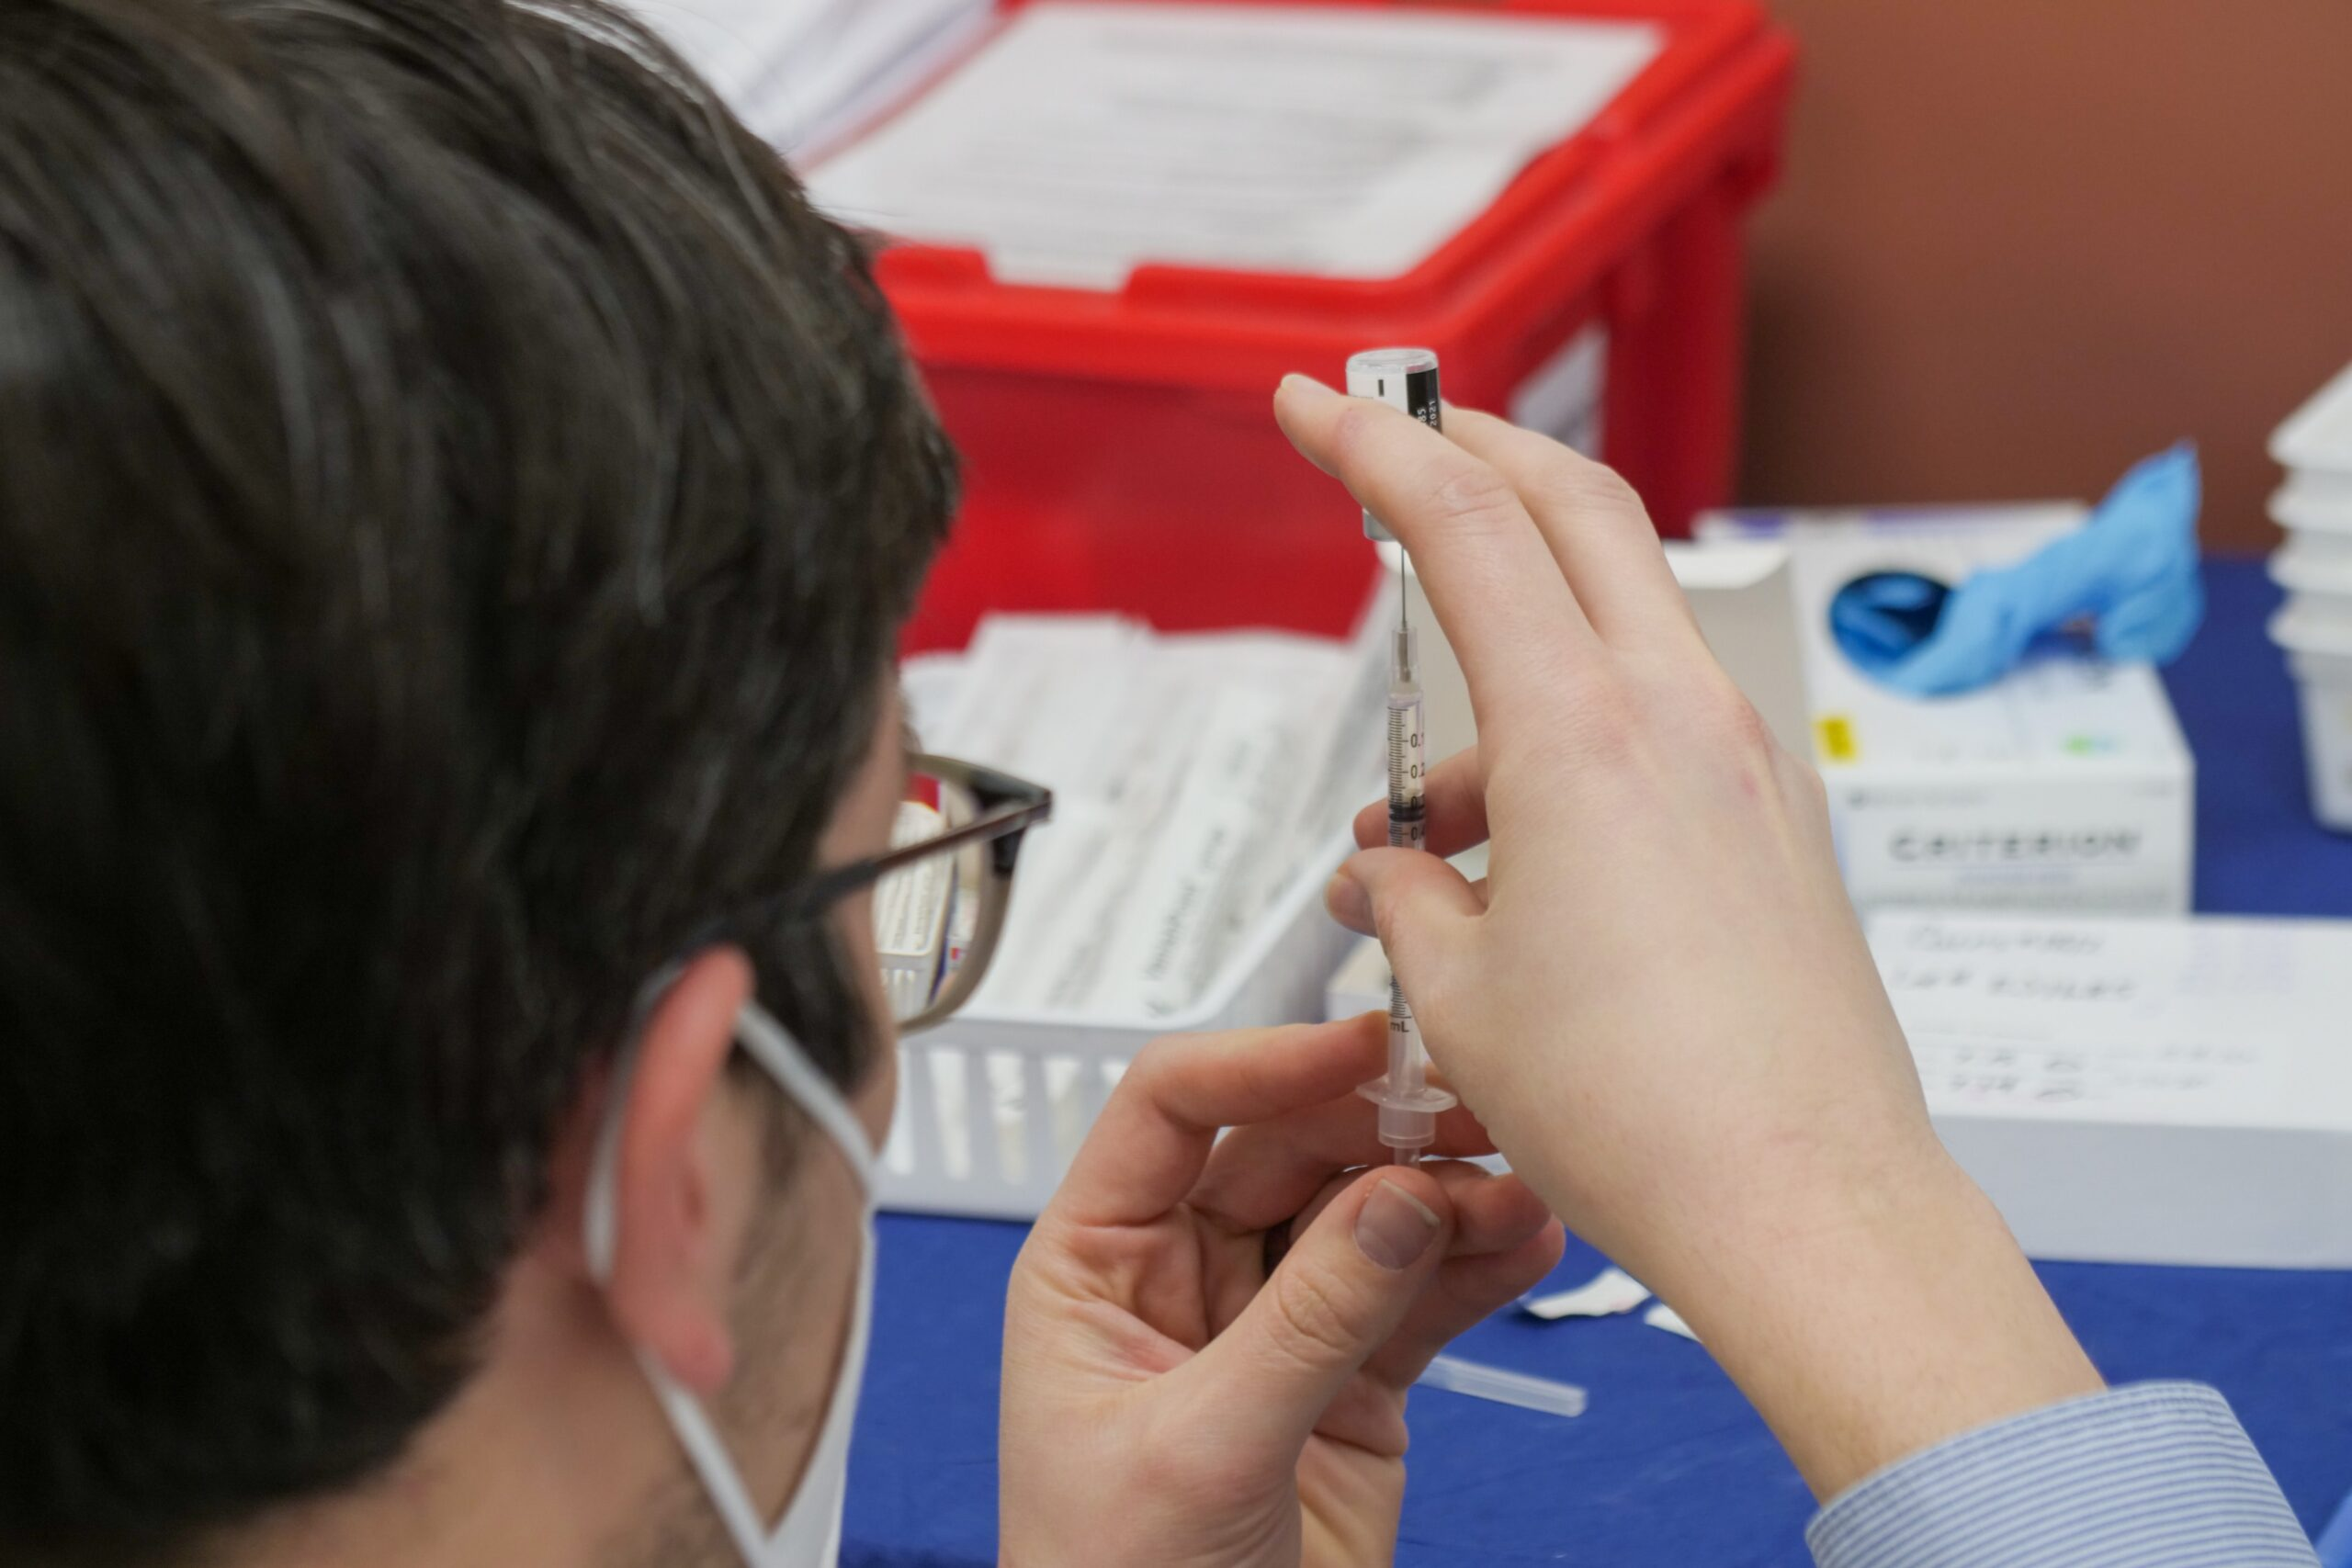 COVID-19 Vaccination In Mexico Advances At Slow Pace